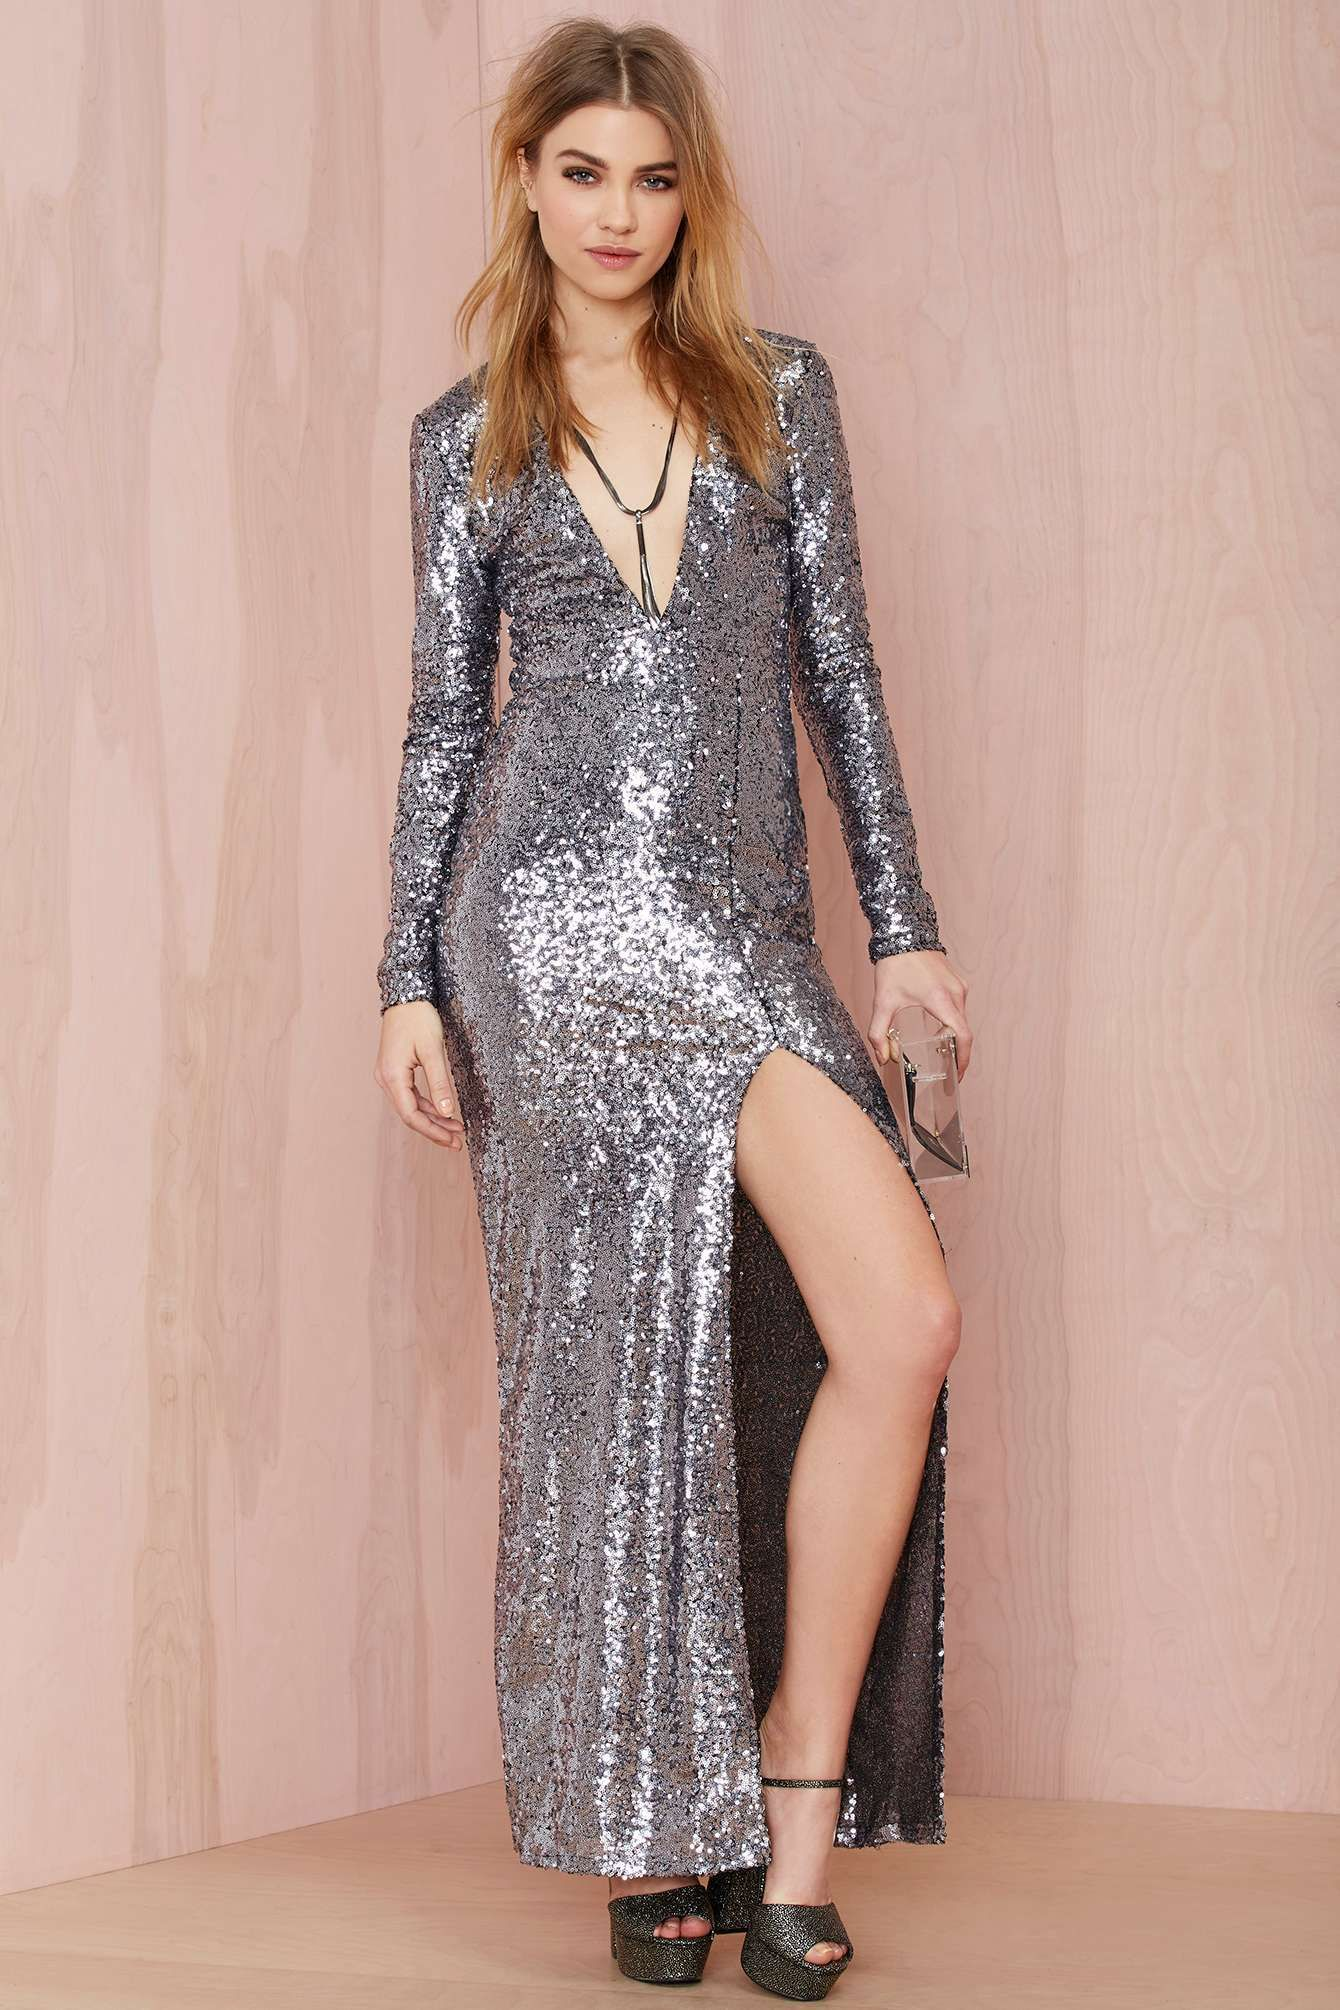 Nasty Gal Hustle Sequin Dress | Shop What's New at Nasty Gal